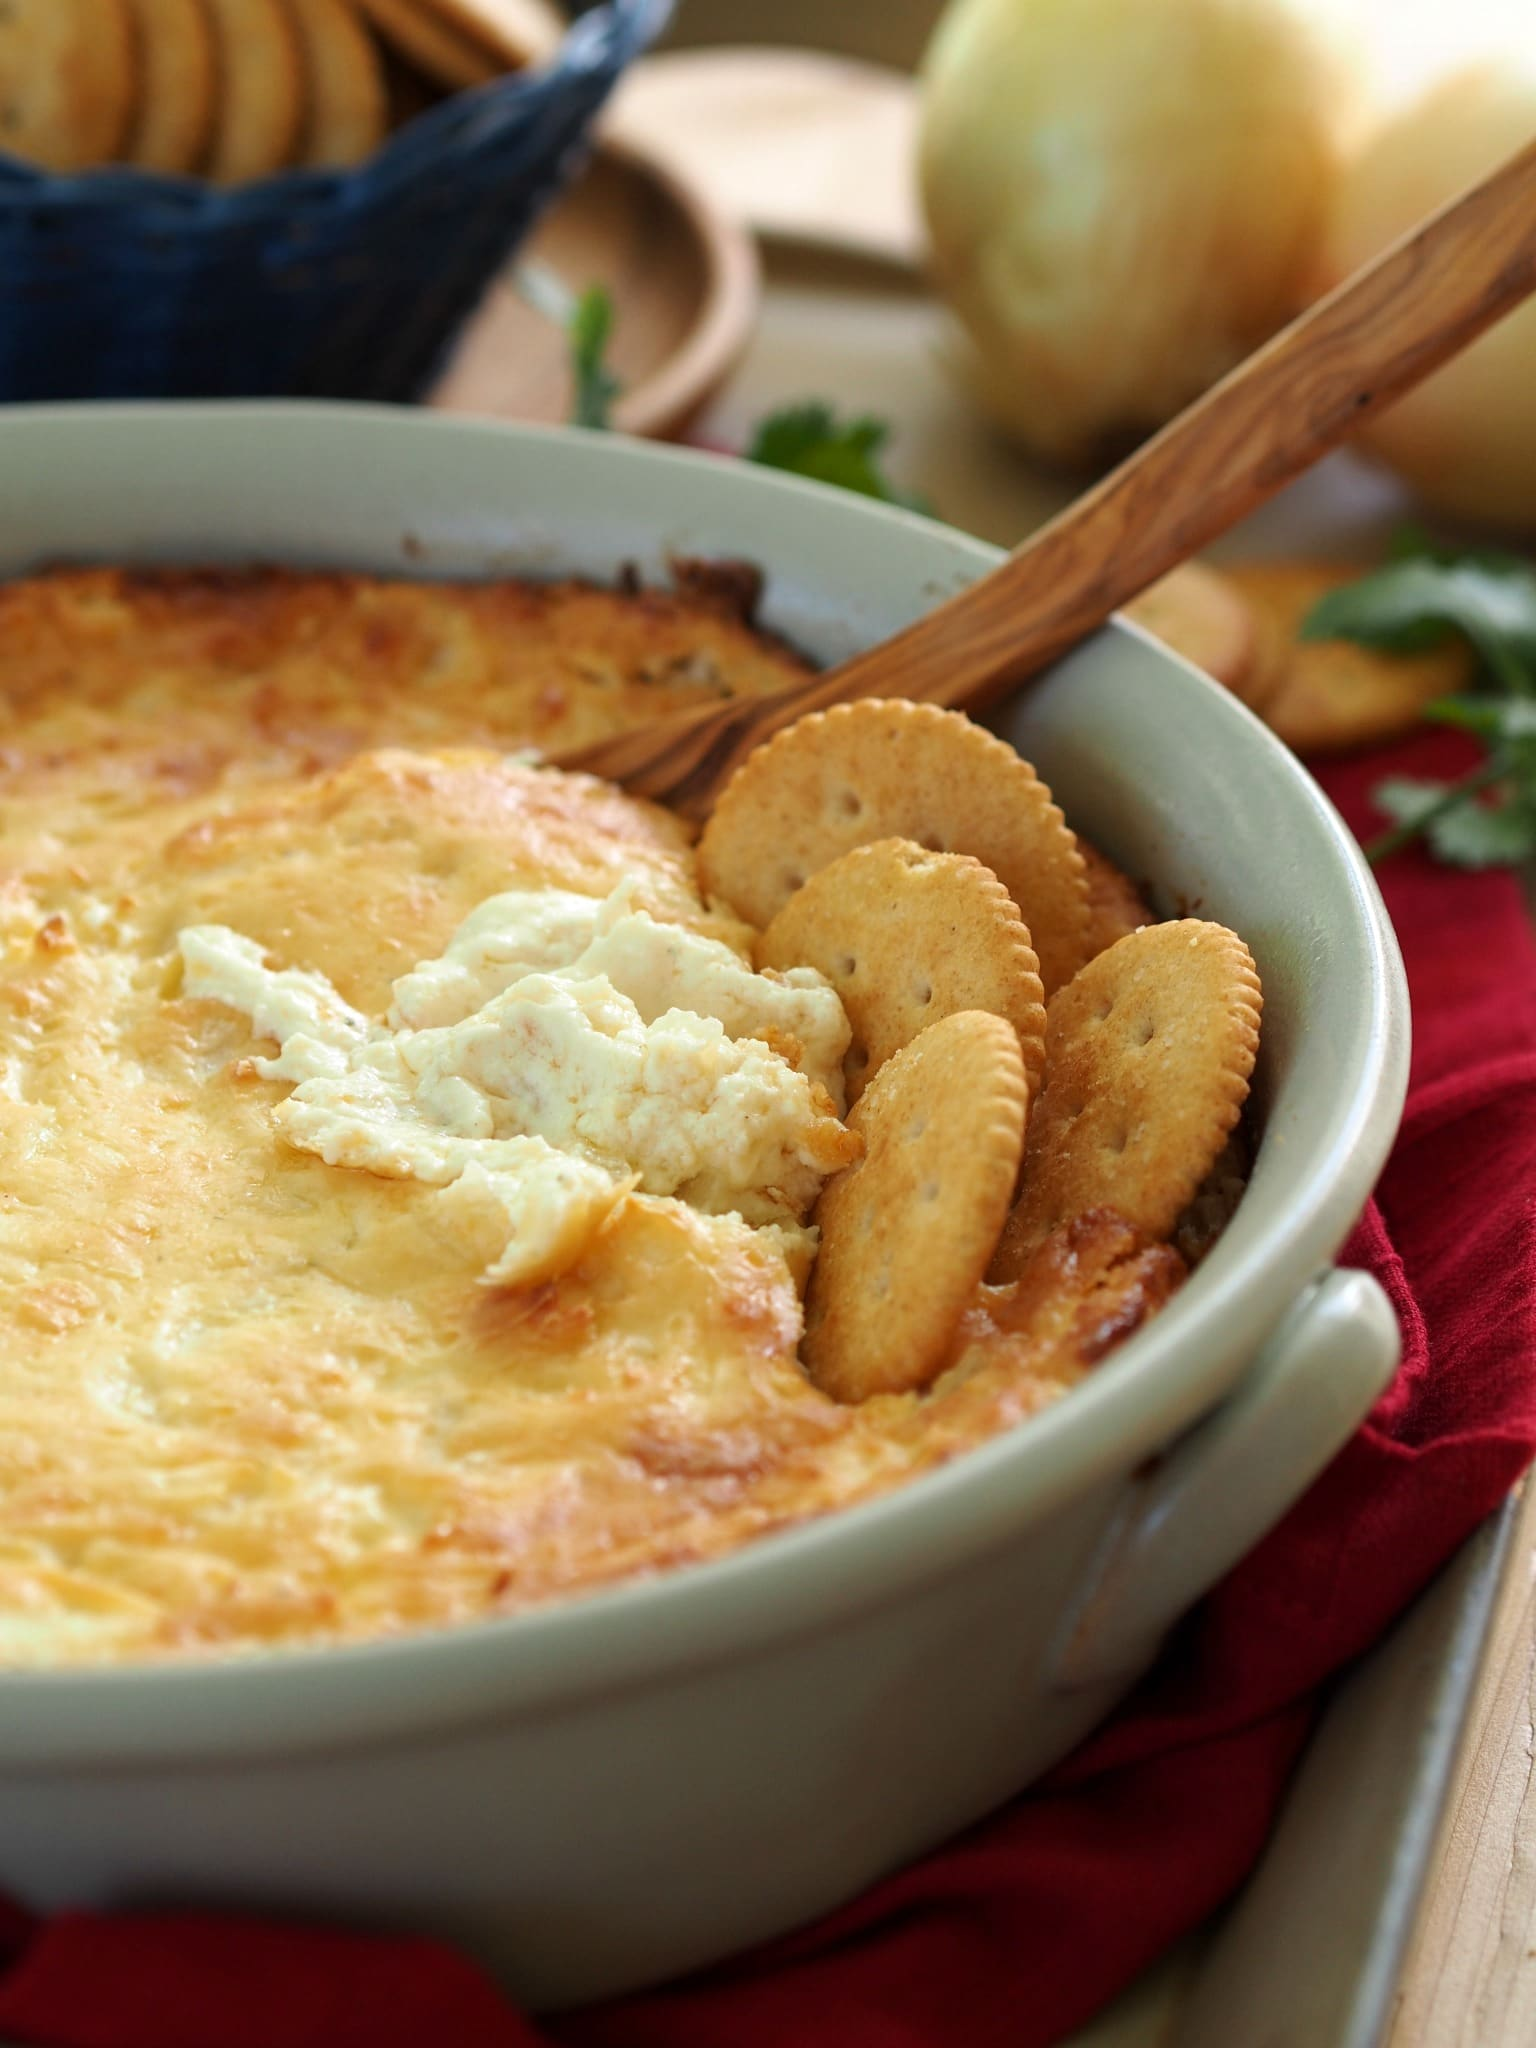 Hot Onion Dip with Boursin. The hot dip food gods decided to create the best dip ever, and this is the result. simplysated